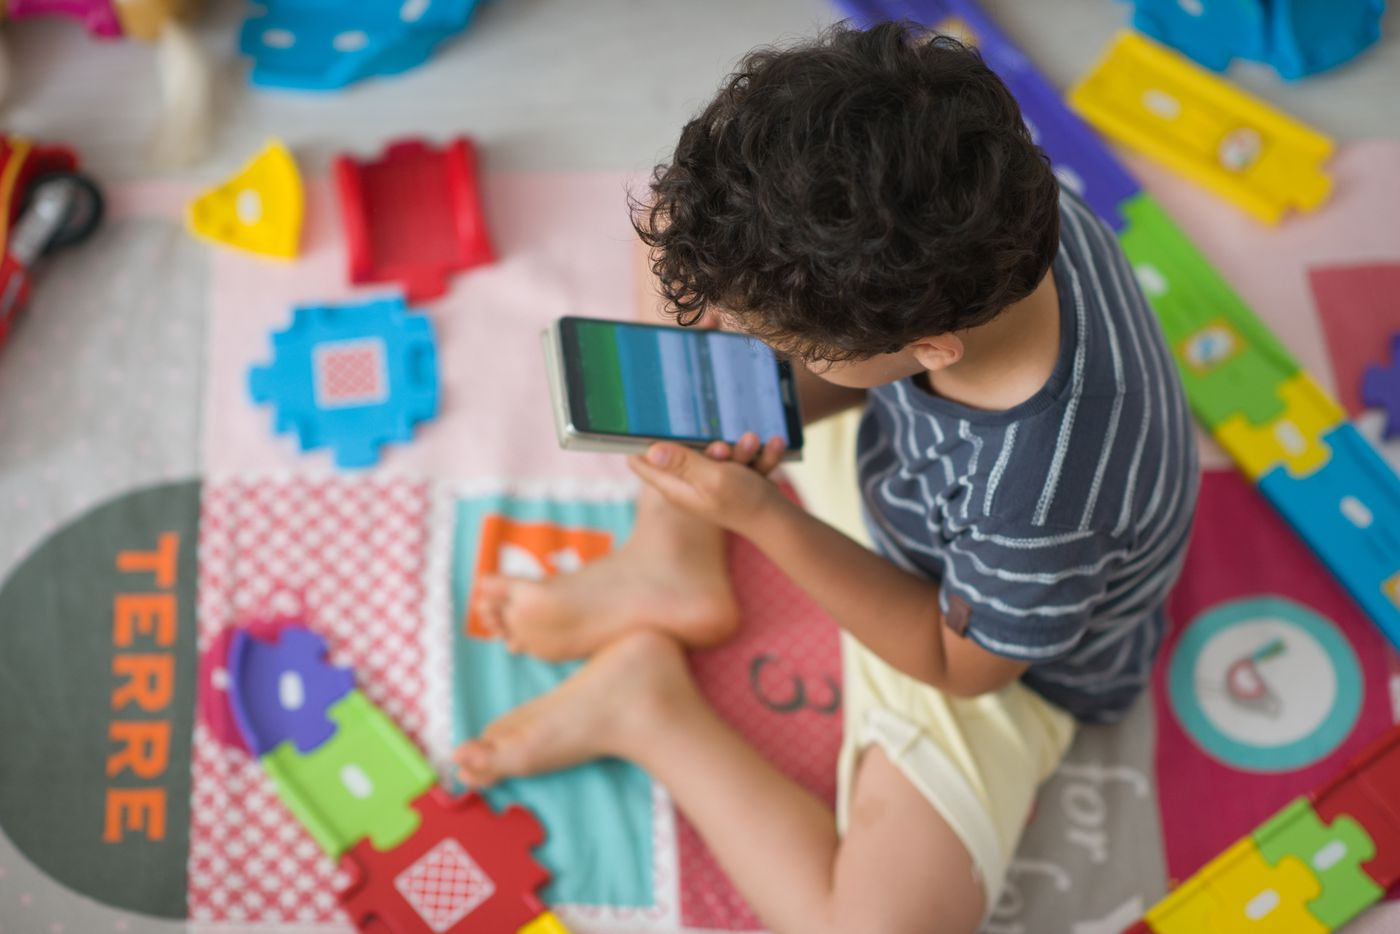 Kids' apps are filled with manipulative ads, according to a